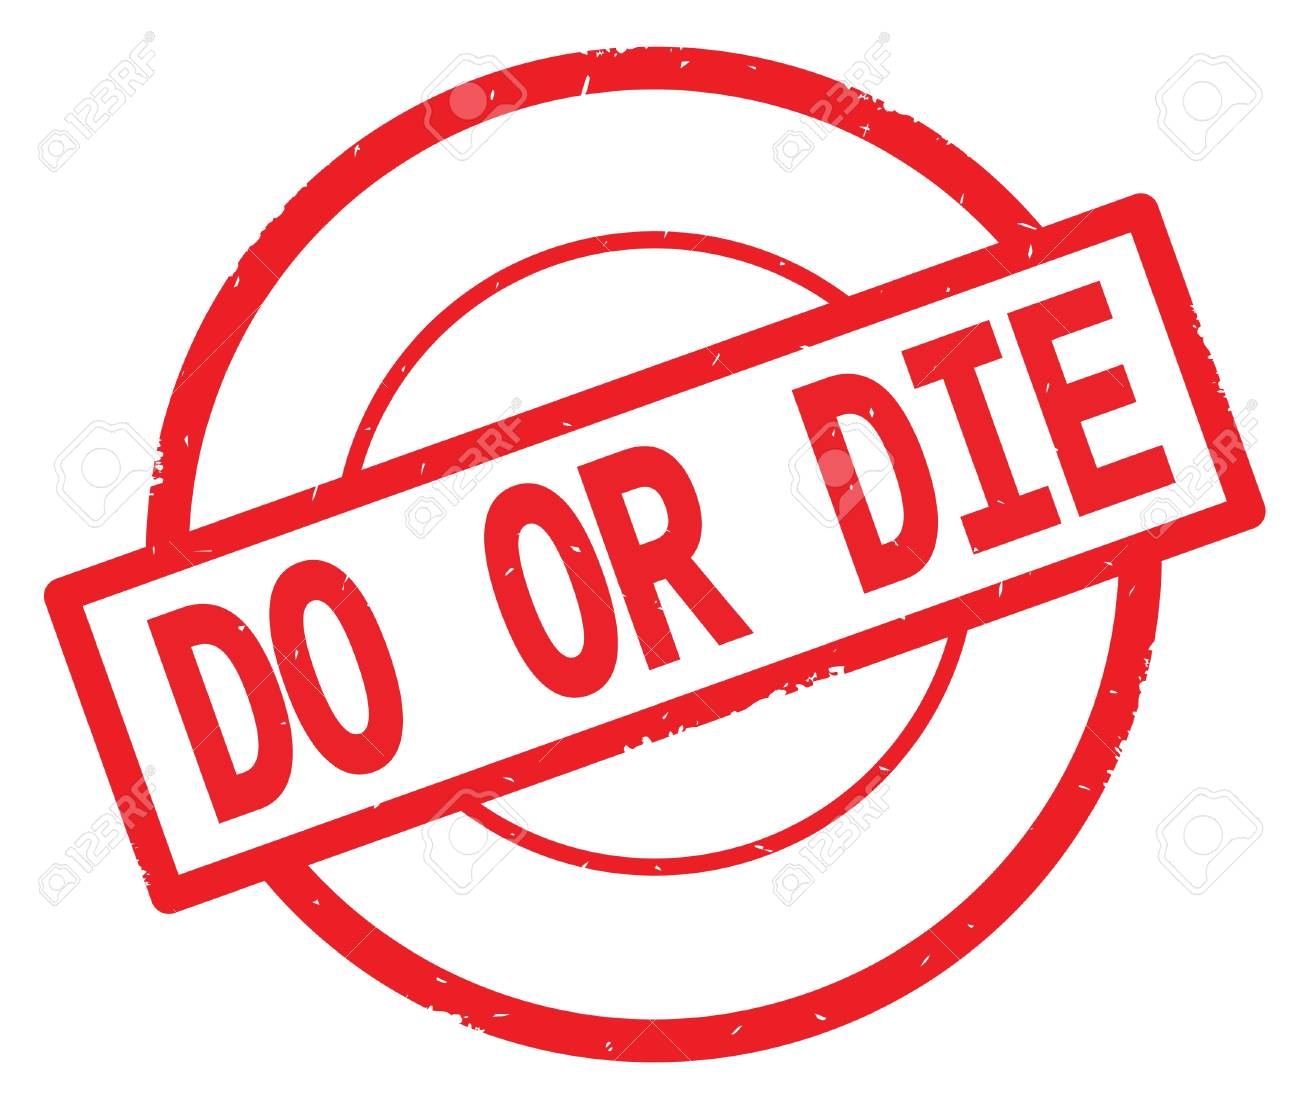 do or die text written on red simple circle rubber vintage stamp